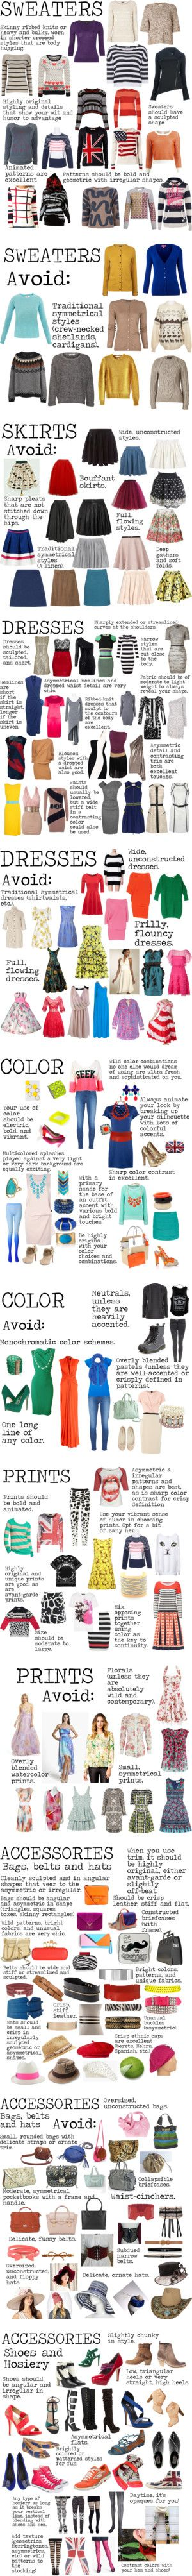 """Flamboyant Gamine body type: ""Vibrant and Exciting."""" by in-vero-pulcritudo on Polyvore"